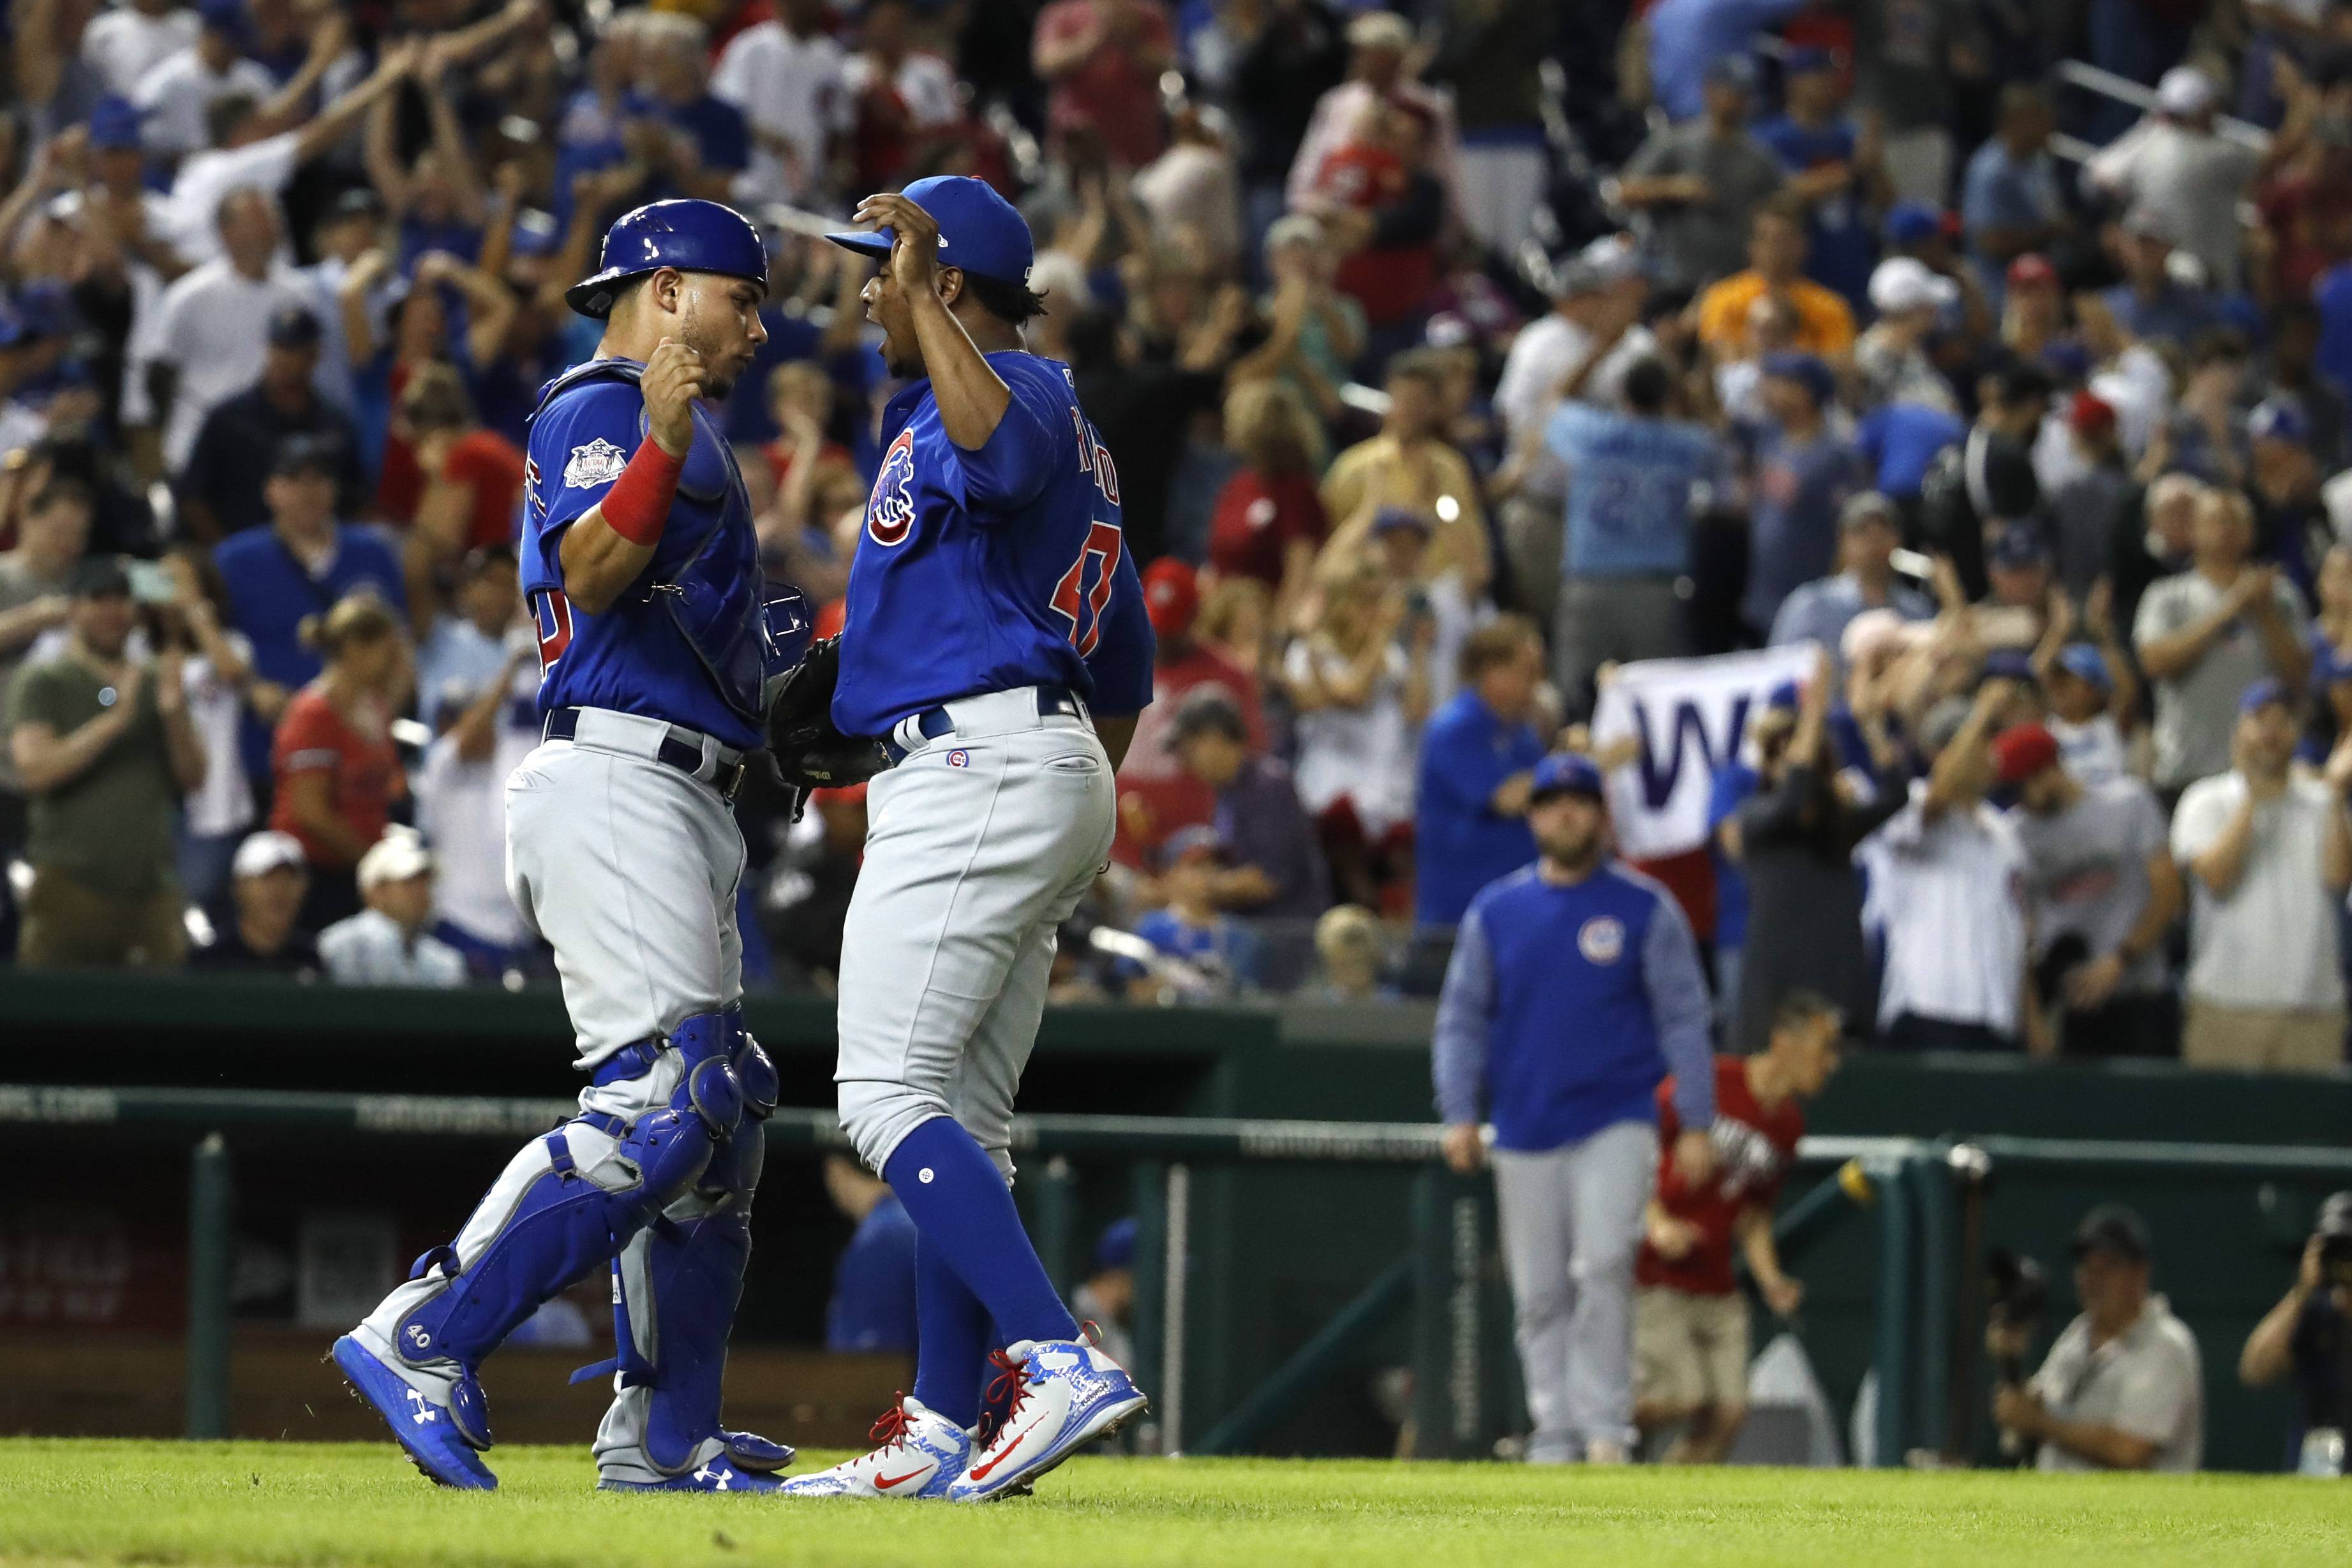 Chicago Cubs catcher Victor Caratini (7) and relief pitcher Randy Rosario (47) celebrate after winning a baseball game in 10 innings against the Washington Nationals, Thursday, Sept. 13, 2018, at Nationals Park in Washington. (AP Photo/Jacquelyn Martin)